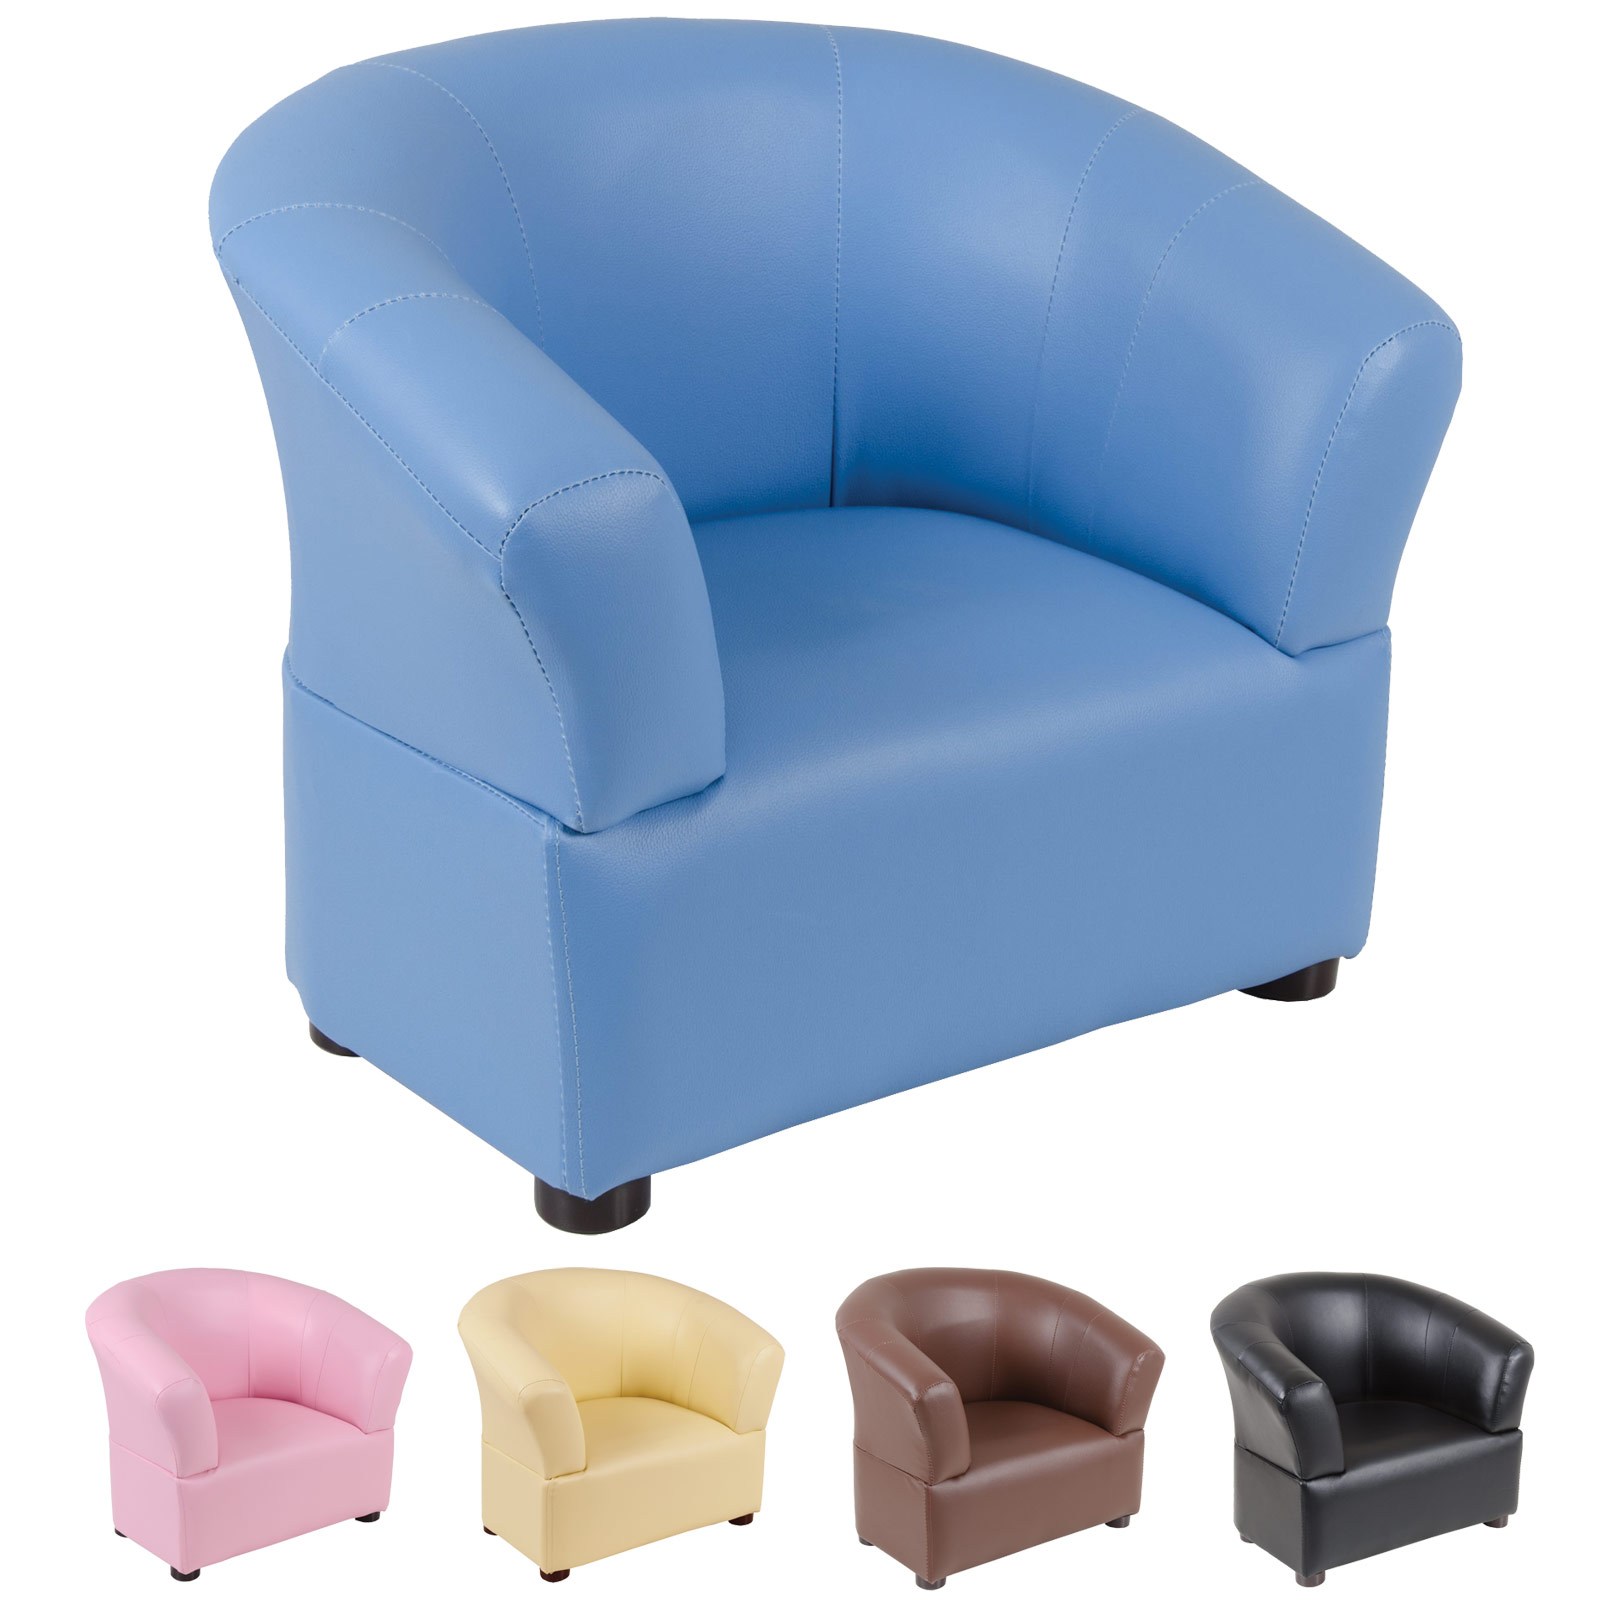 Low Comfy Chairs Kids Comfy Pvc Leather Look Tub Chair Armchair Seat